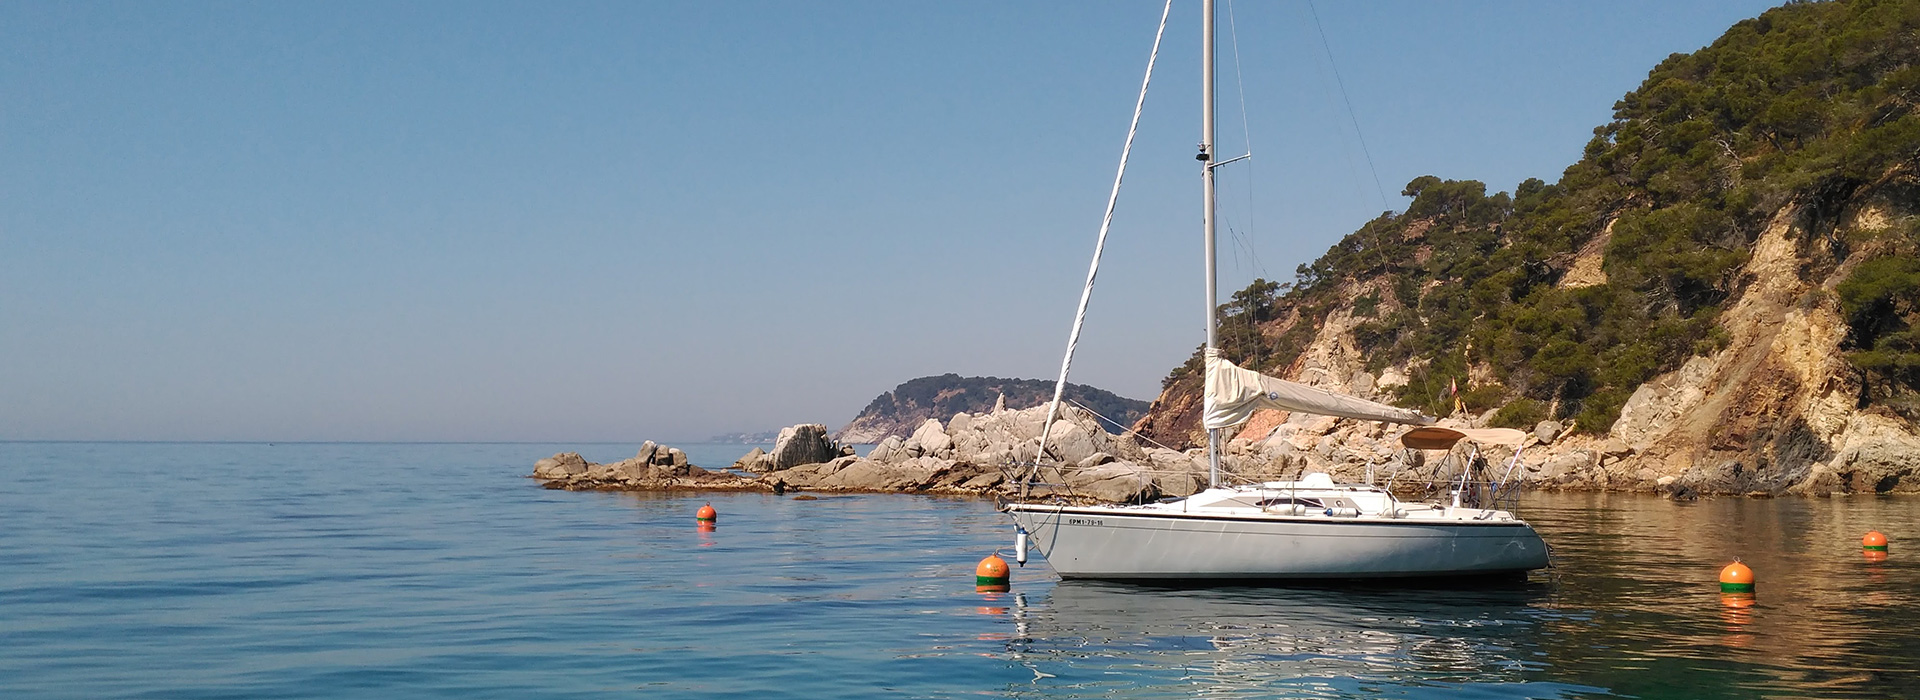 Sailing excursions from Palamós